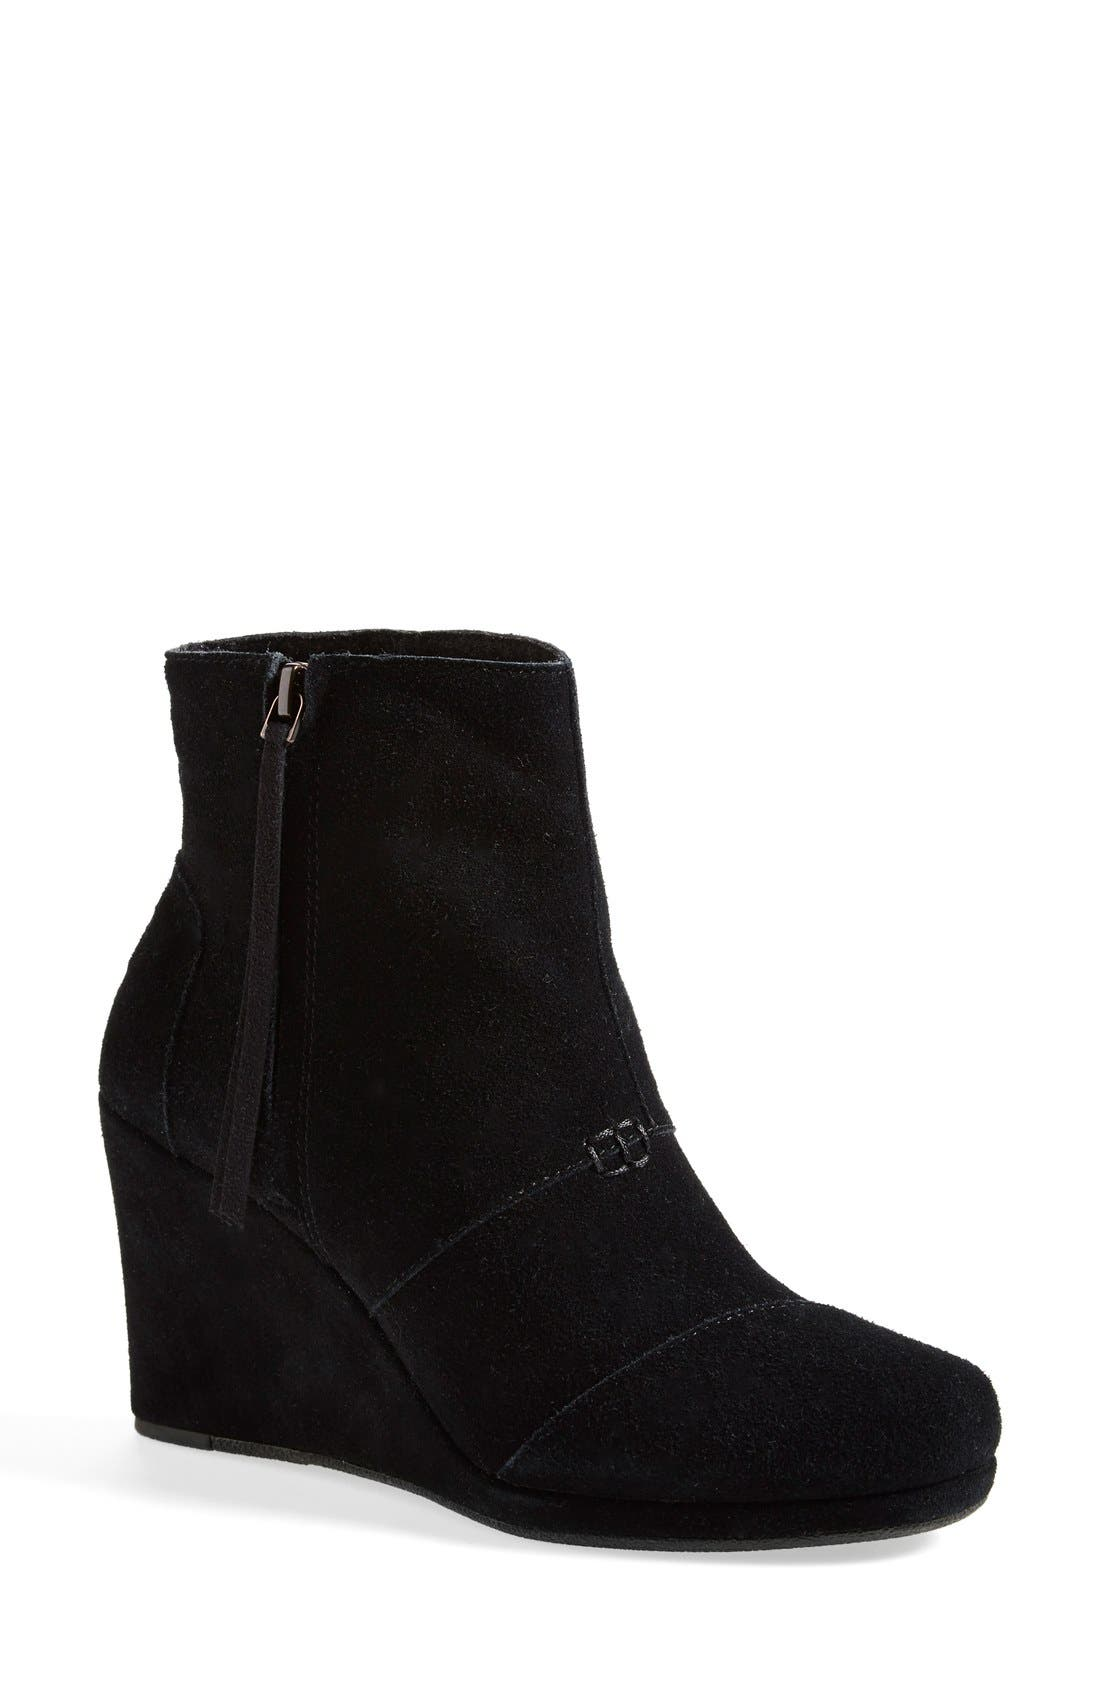 Alternate Image 1 Selected - TOMS 'Desert' Wedge High Bootie (Women)